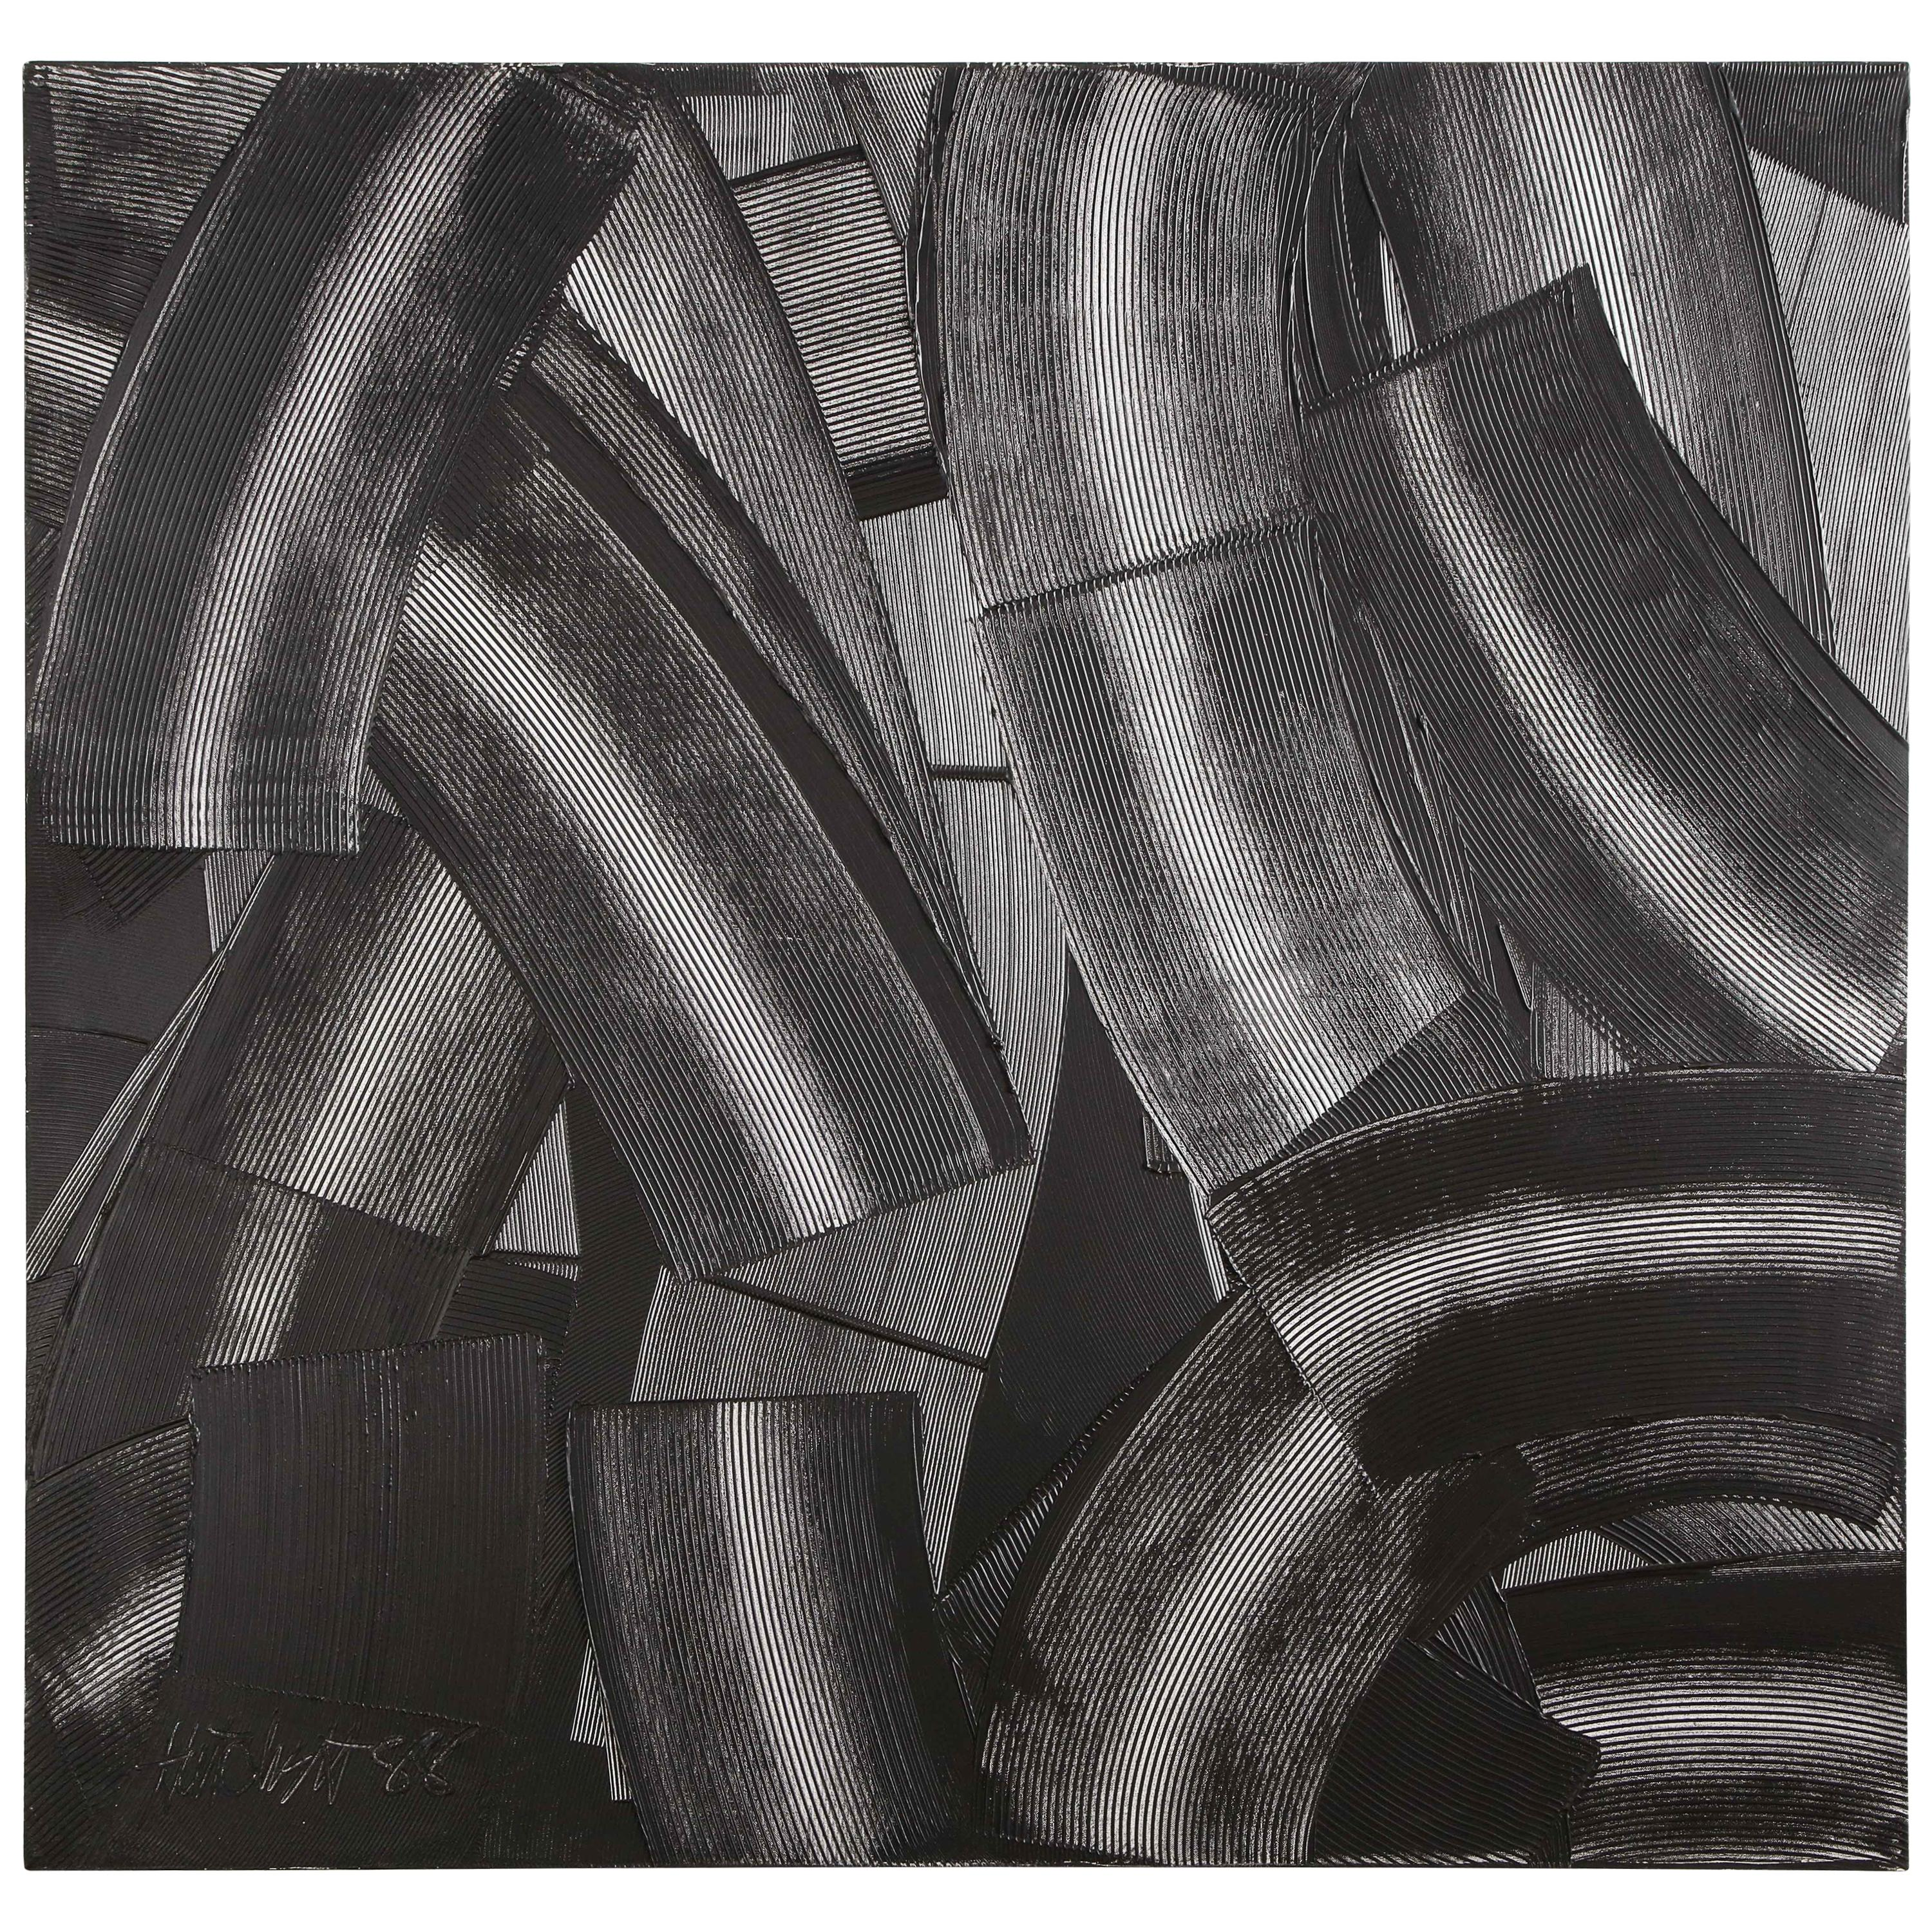 """Abstract Black & White """"Trowel"""" Painting by Duayne Hatchett, USA 1990s"""